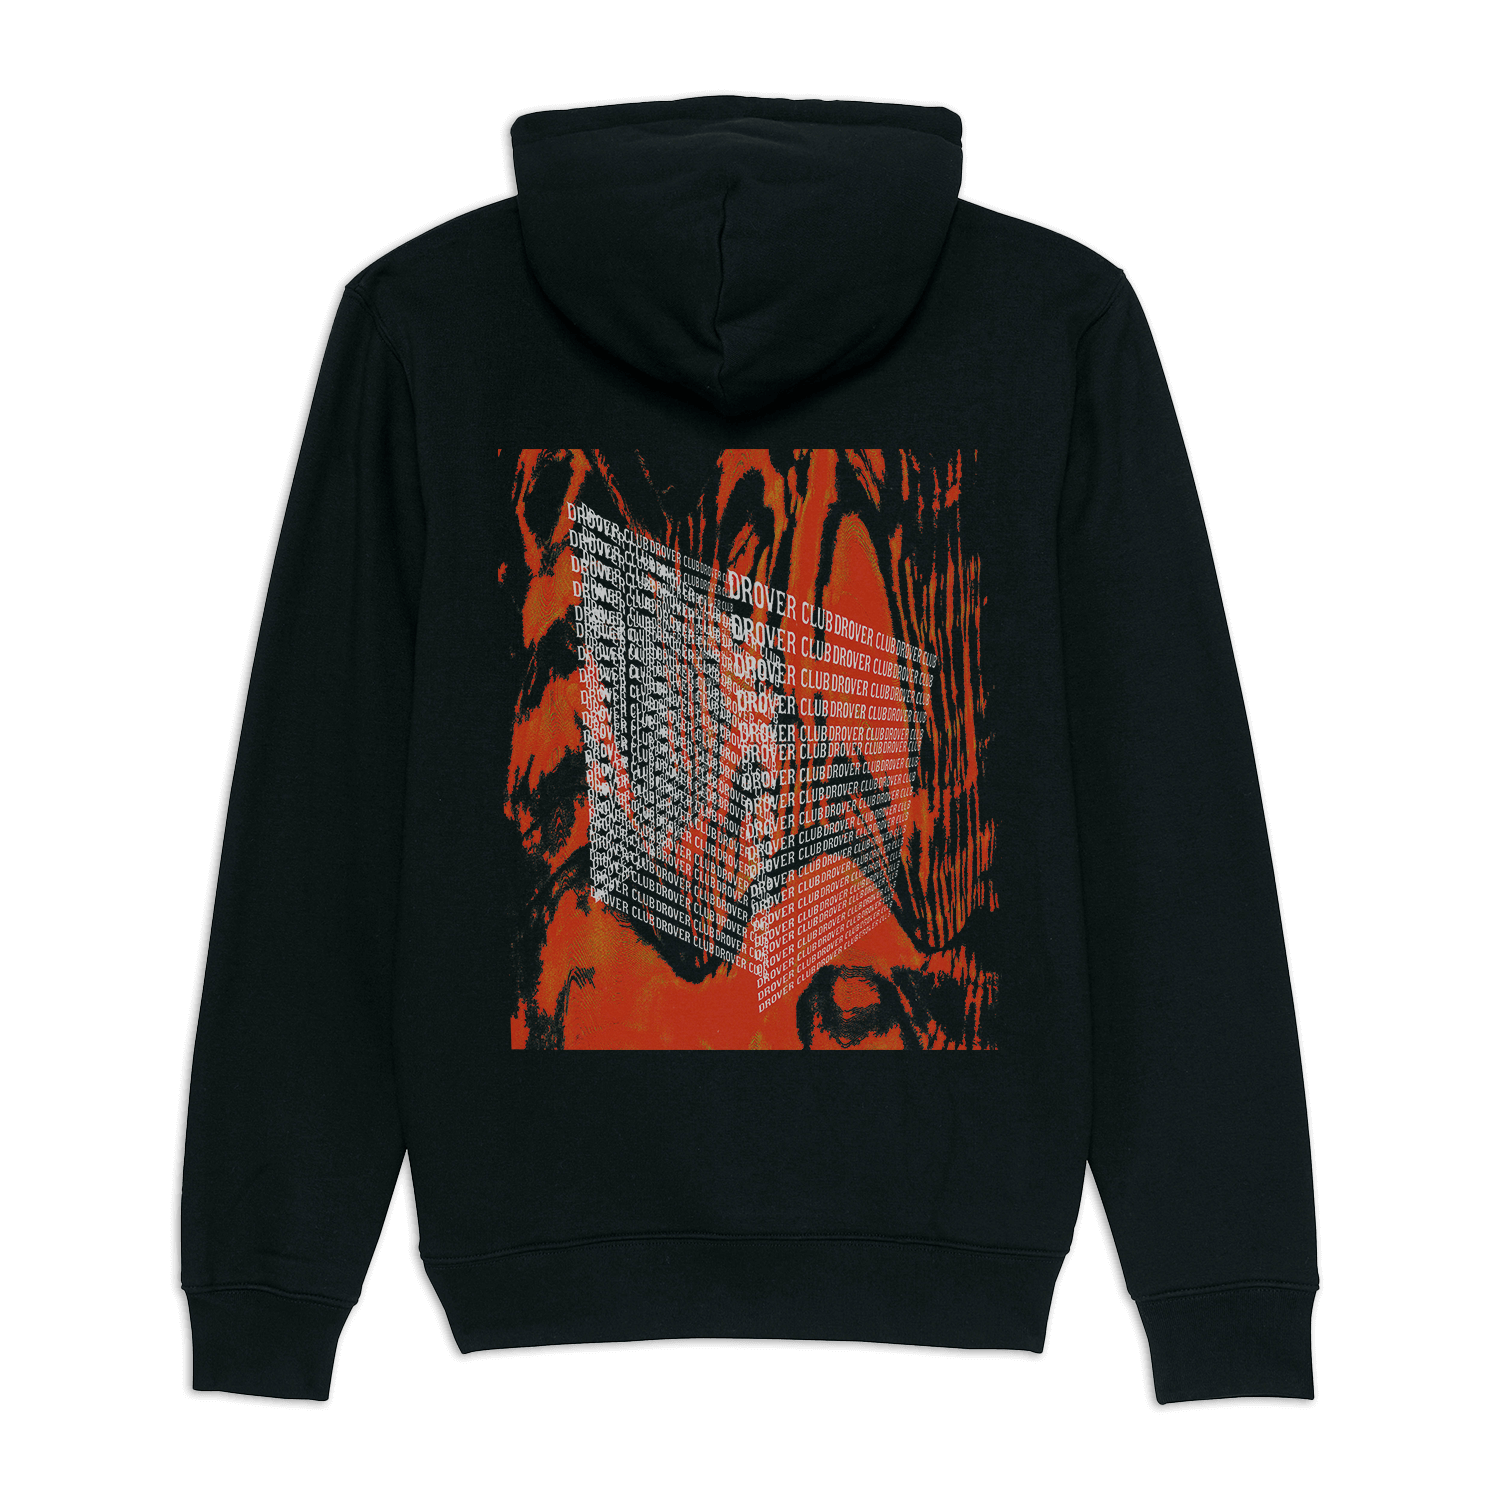 """Maverick splash black hoodie from the """"Maverick Adventure"""" collection released by Drover club"""